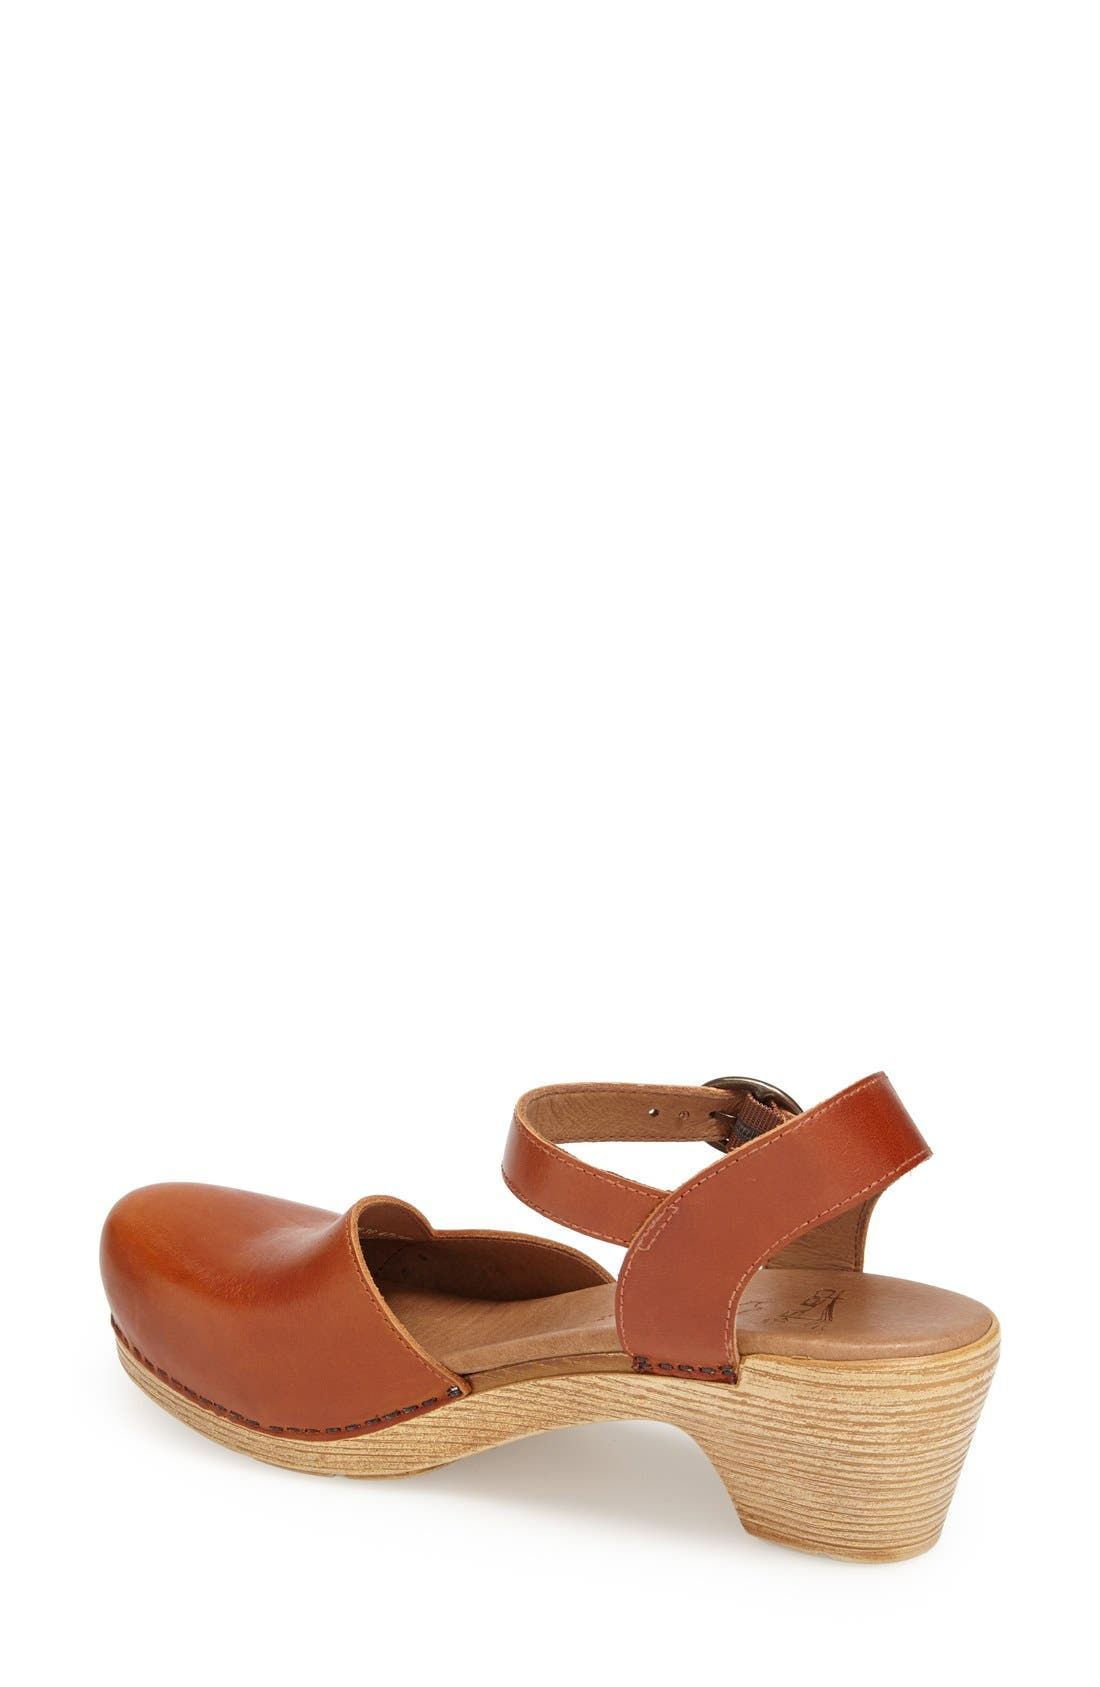 'Maisie' Ankle Strap Leather Pump,                             Alternate thumbnail 4, color,                             Toffee